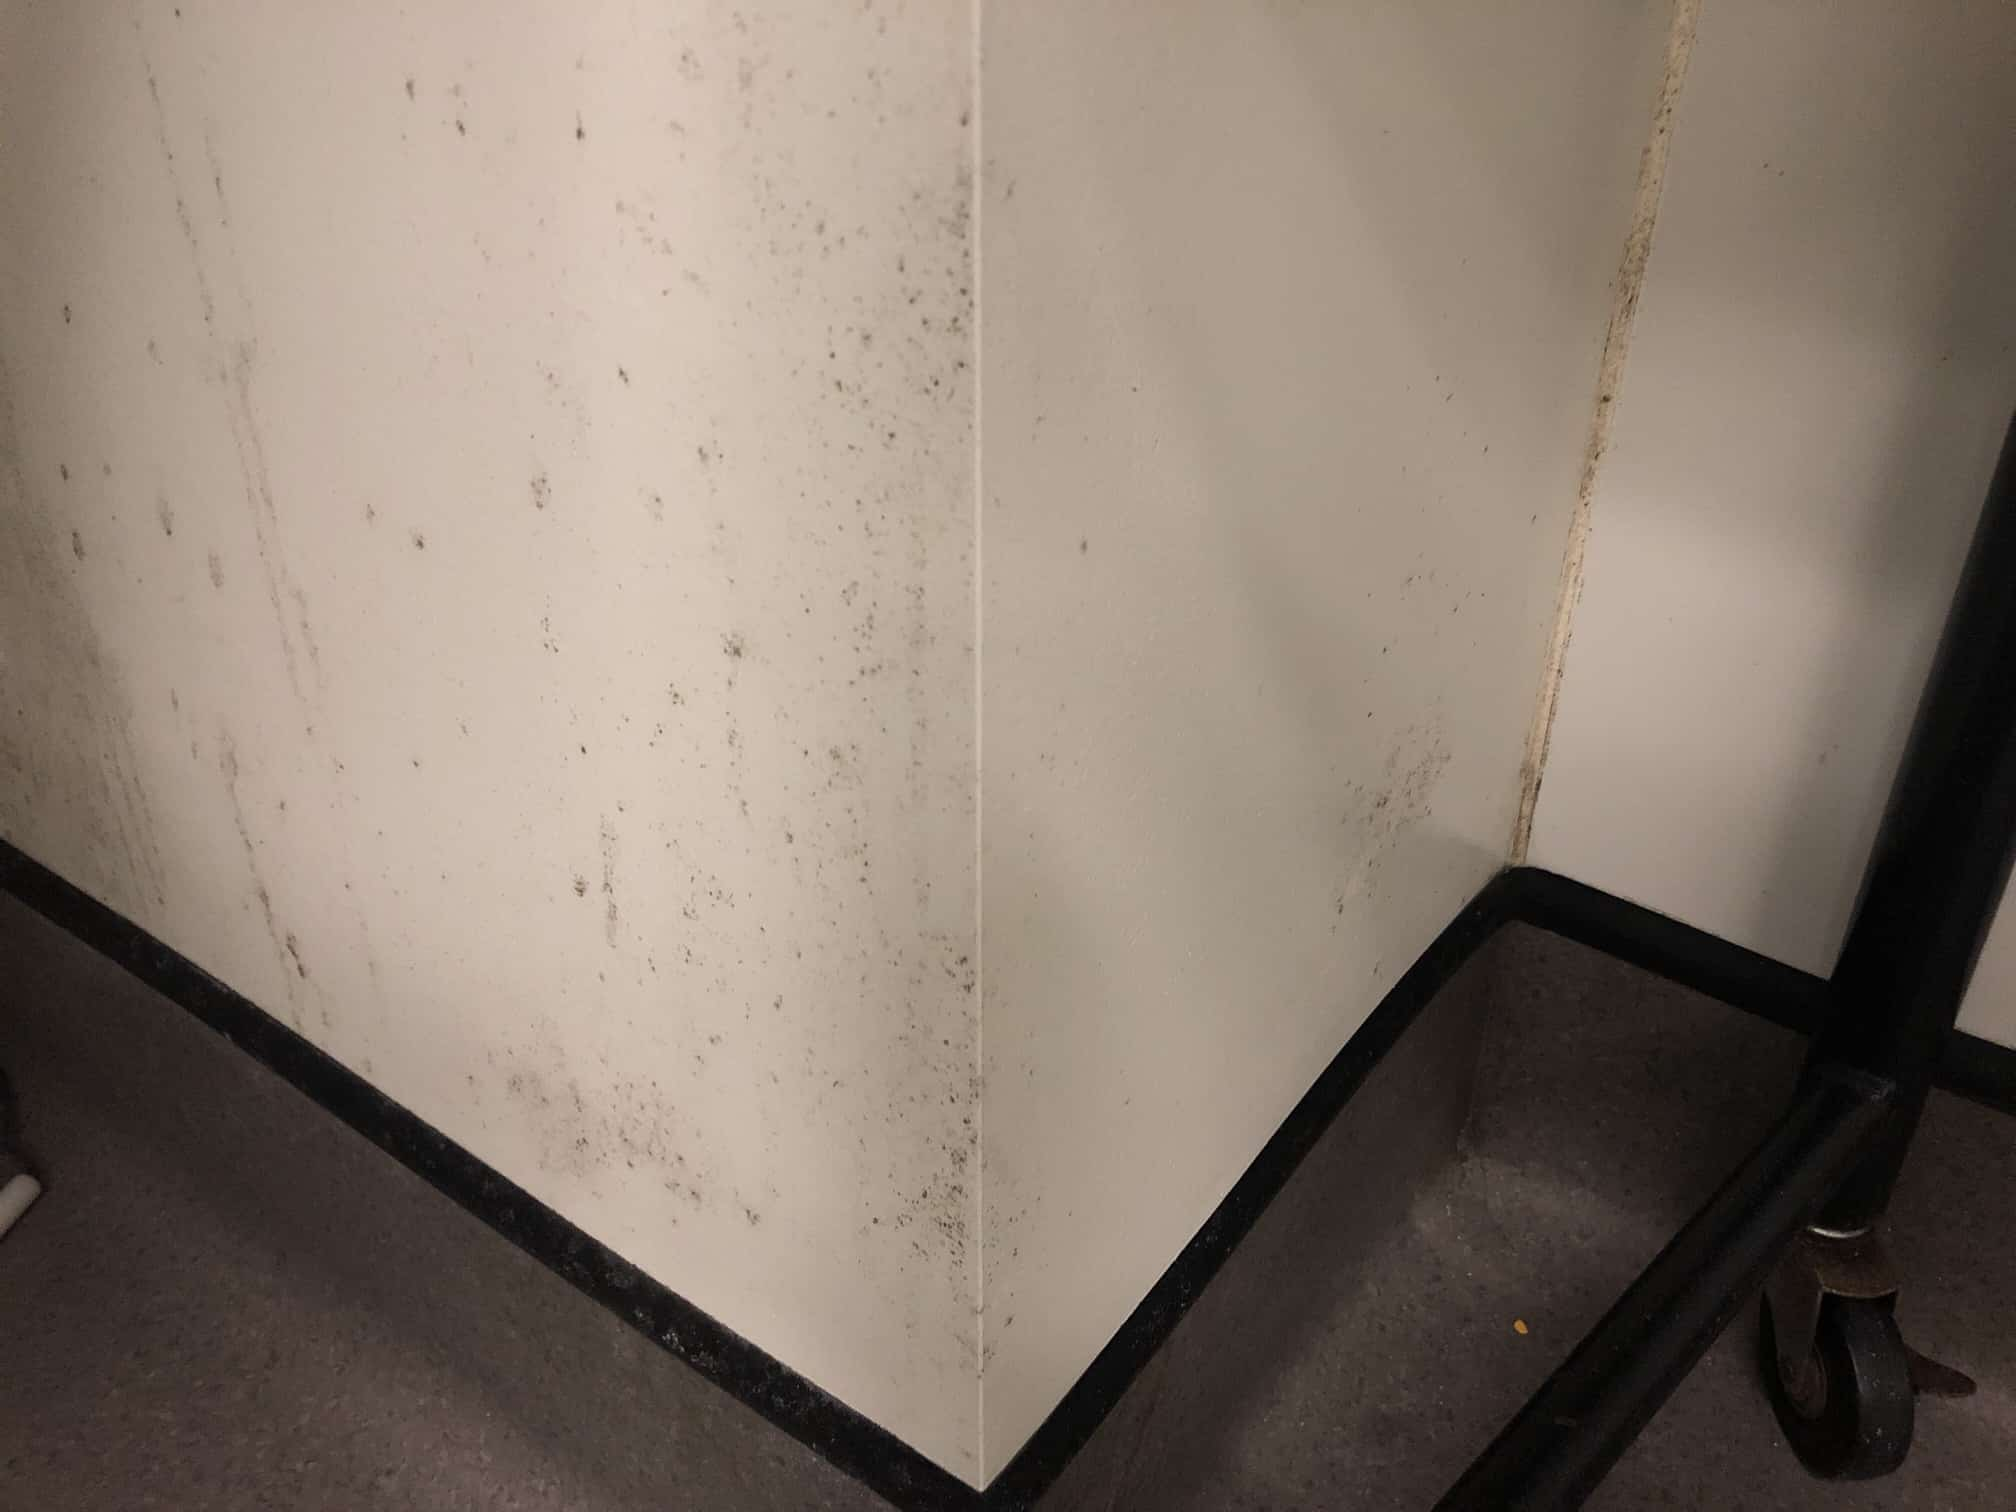 black stains on the wall